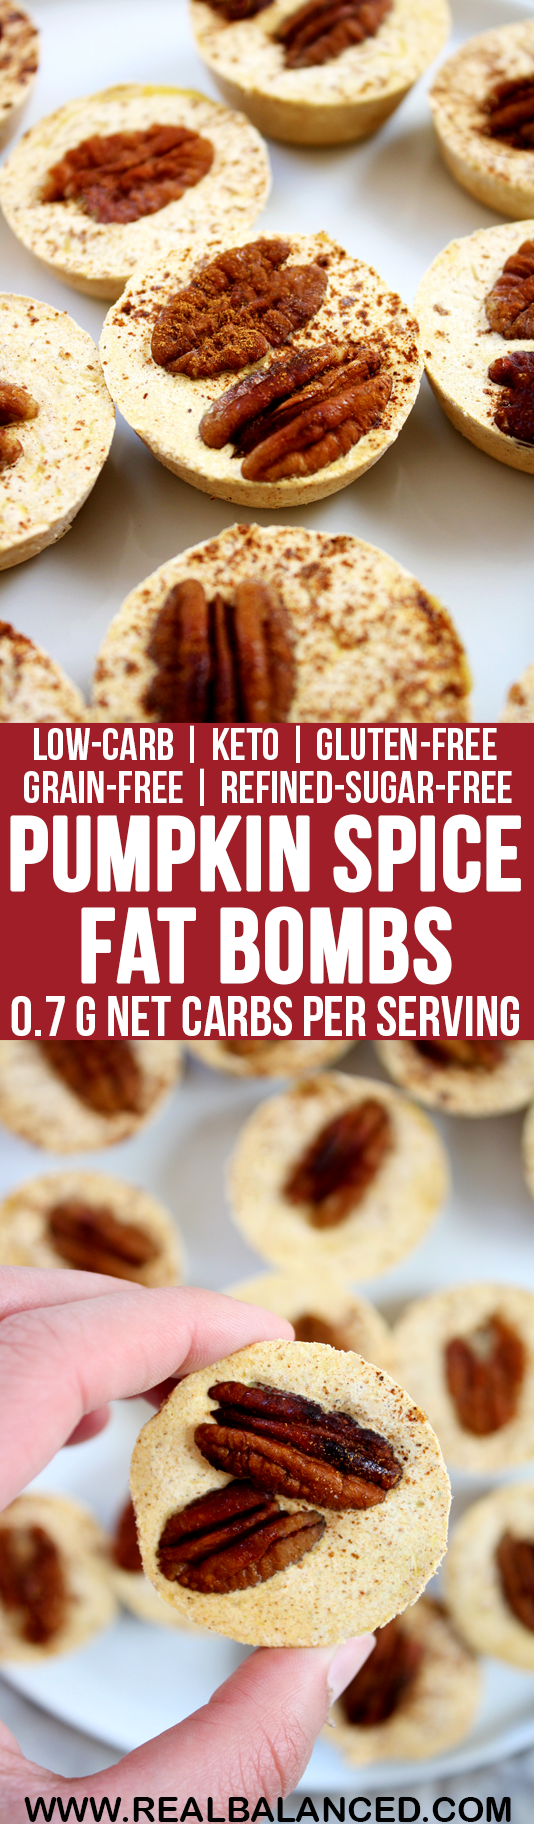 Pumpkin Spice Fat Bombs: low-carb, keto, gluten-free, grain-free, vegetarian, & refined-sugar-free! Less than 1g net carbs per serving!